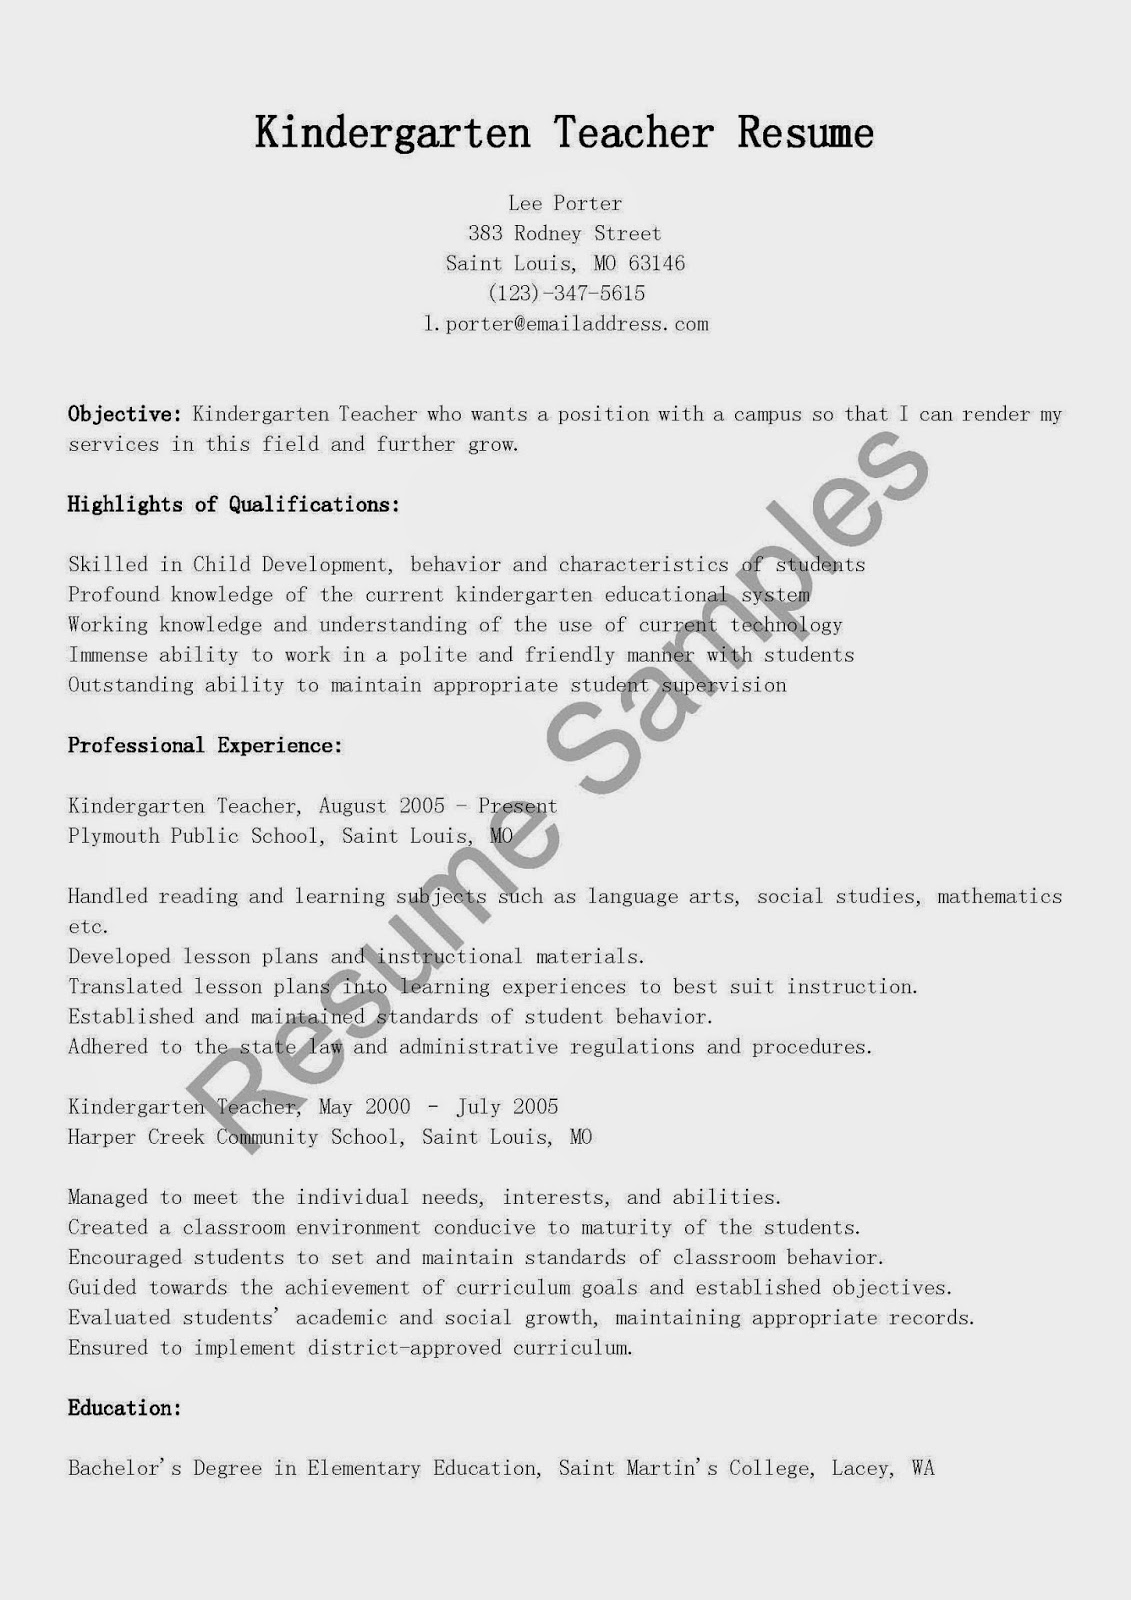 Sample Teacher Resume Templates Resume Samples Kindergarten Teacher Resume Sample